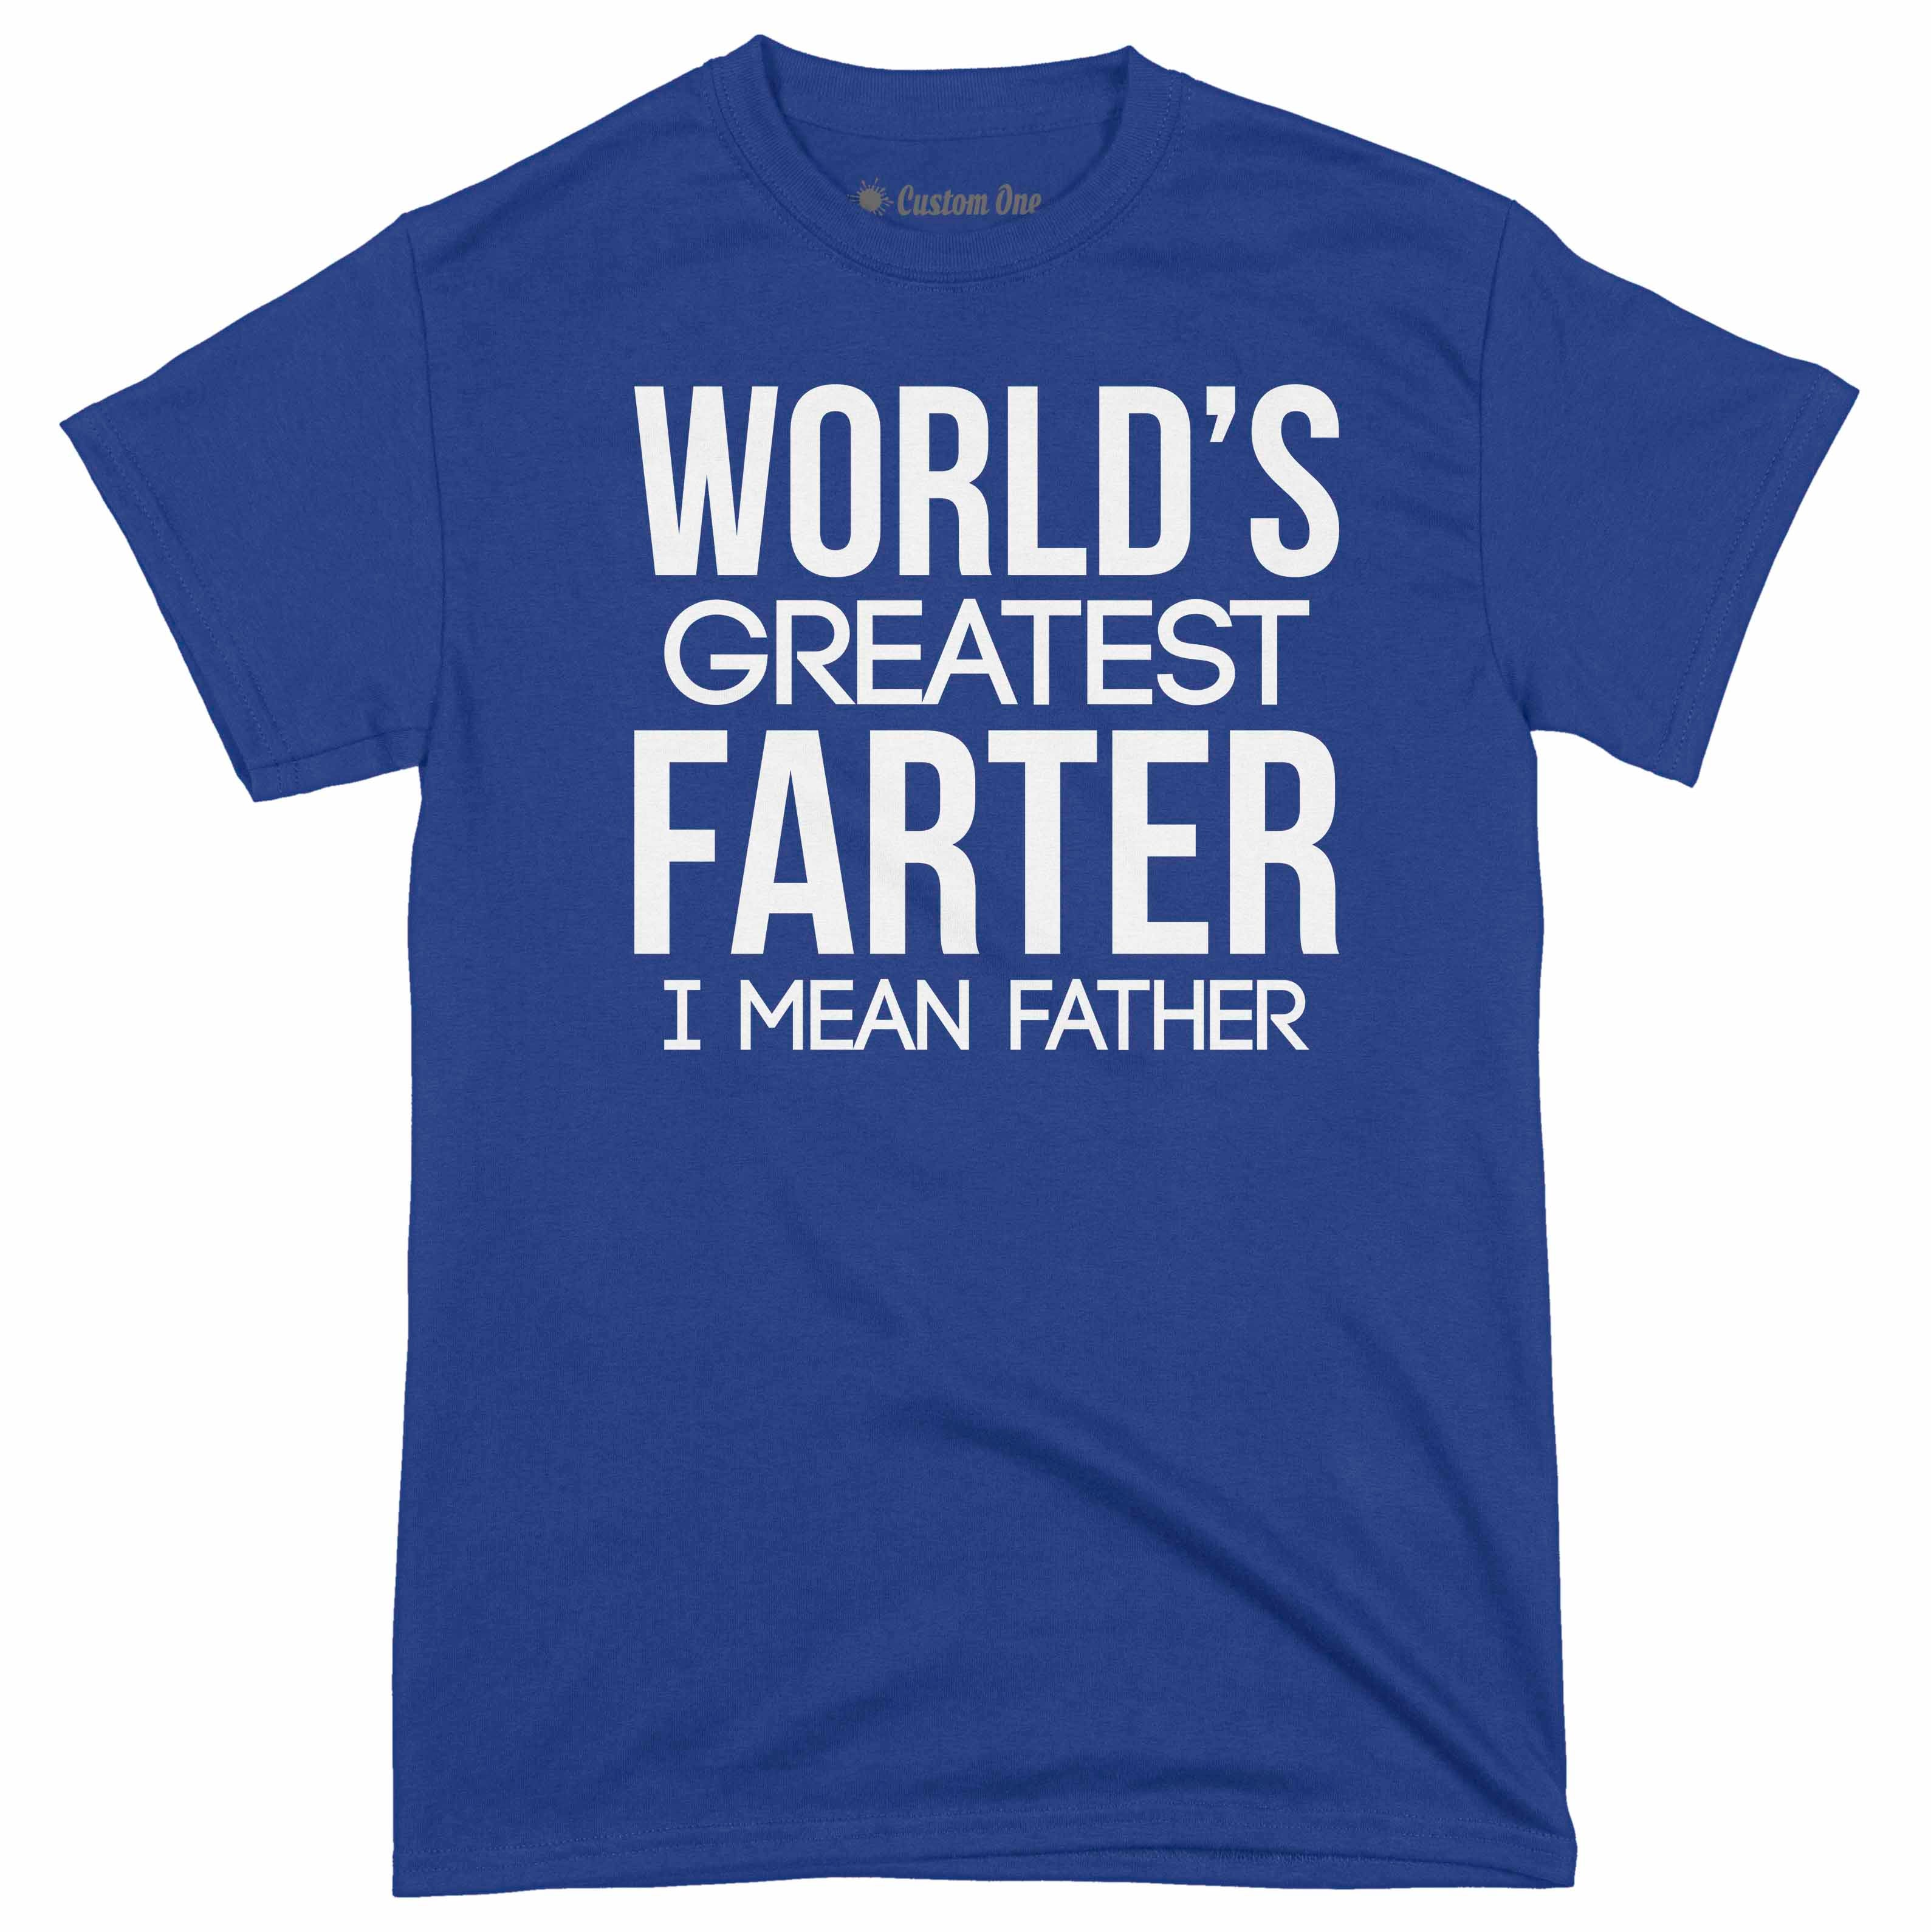 WORLD'S GREATEST FARTER